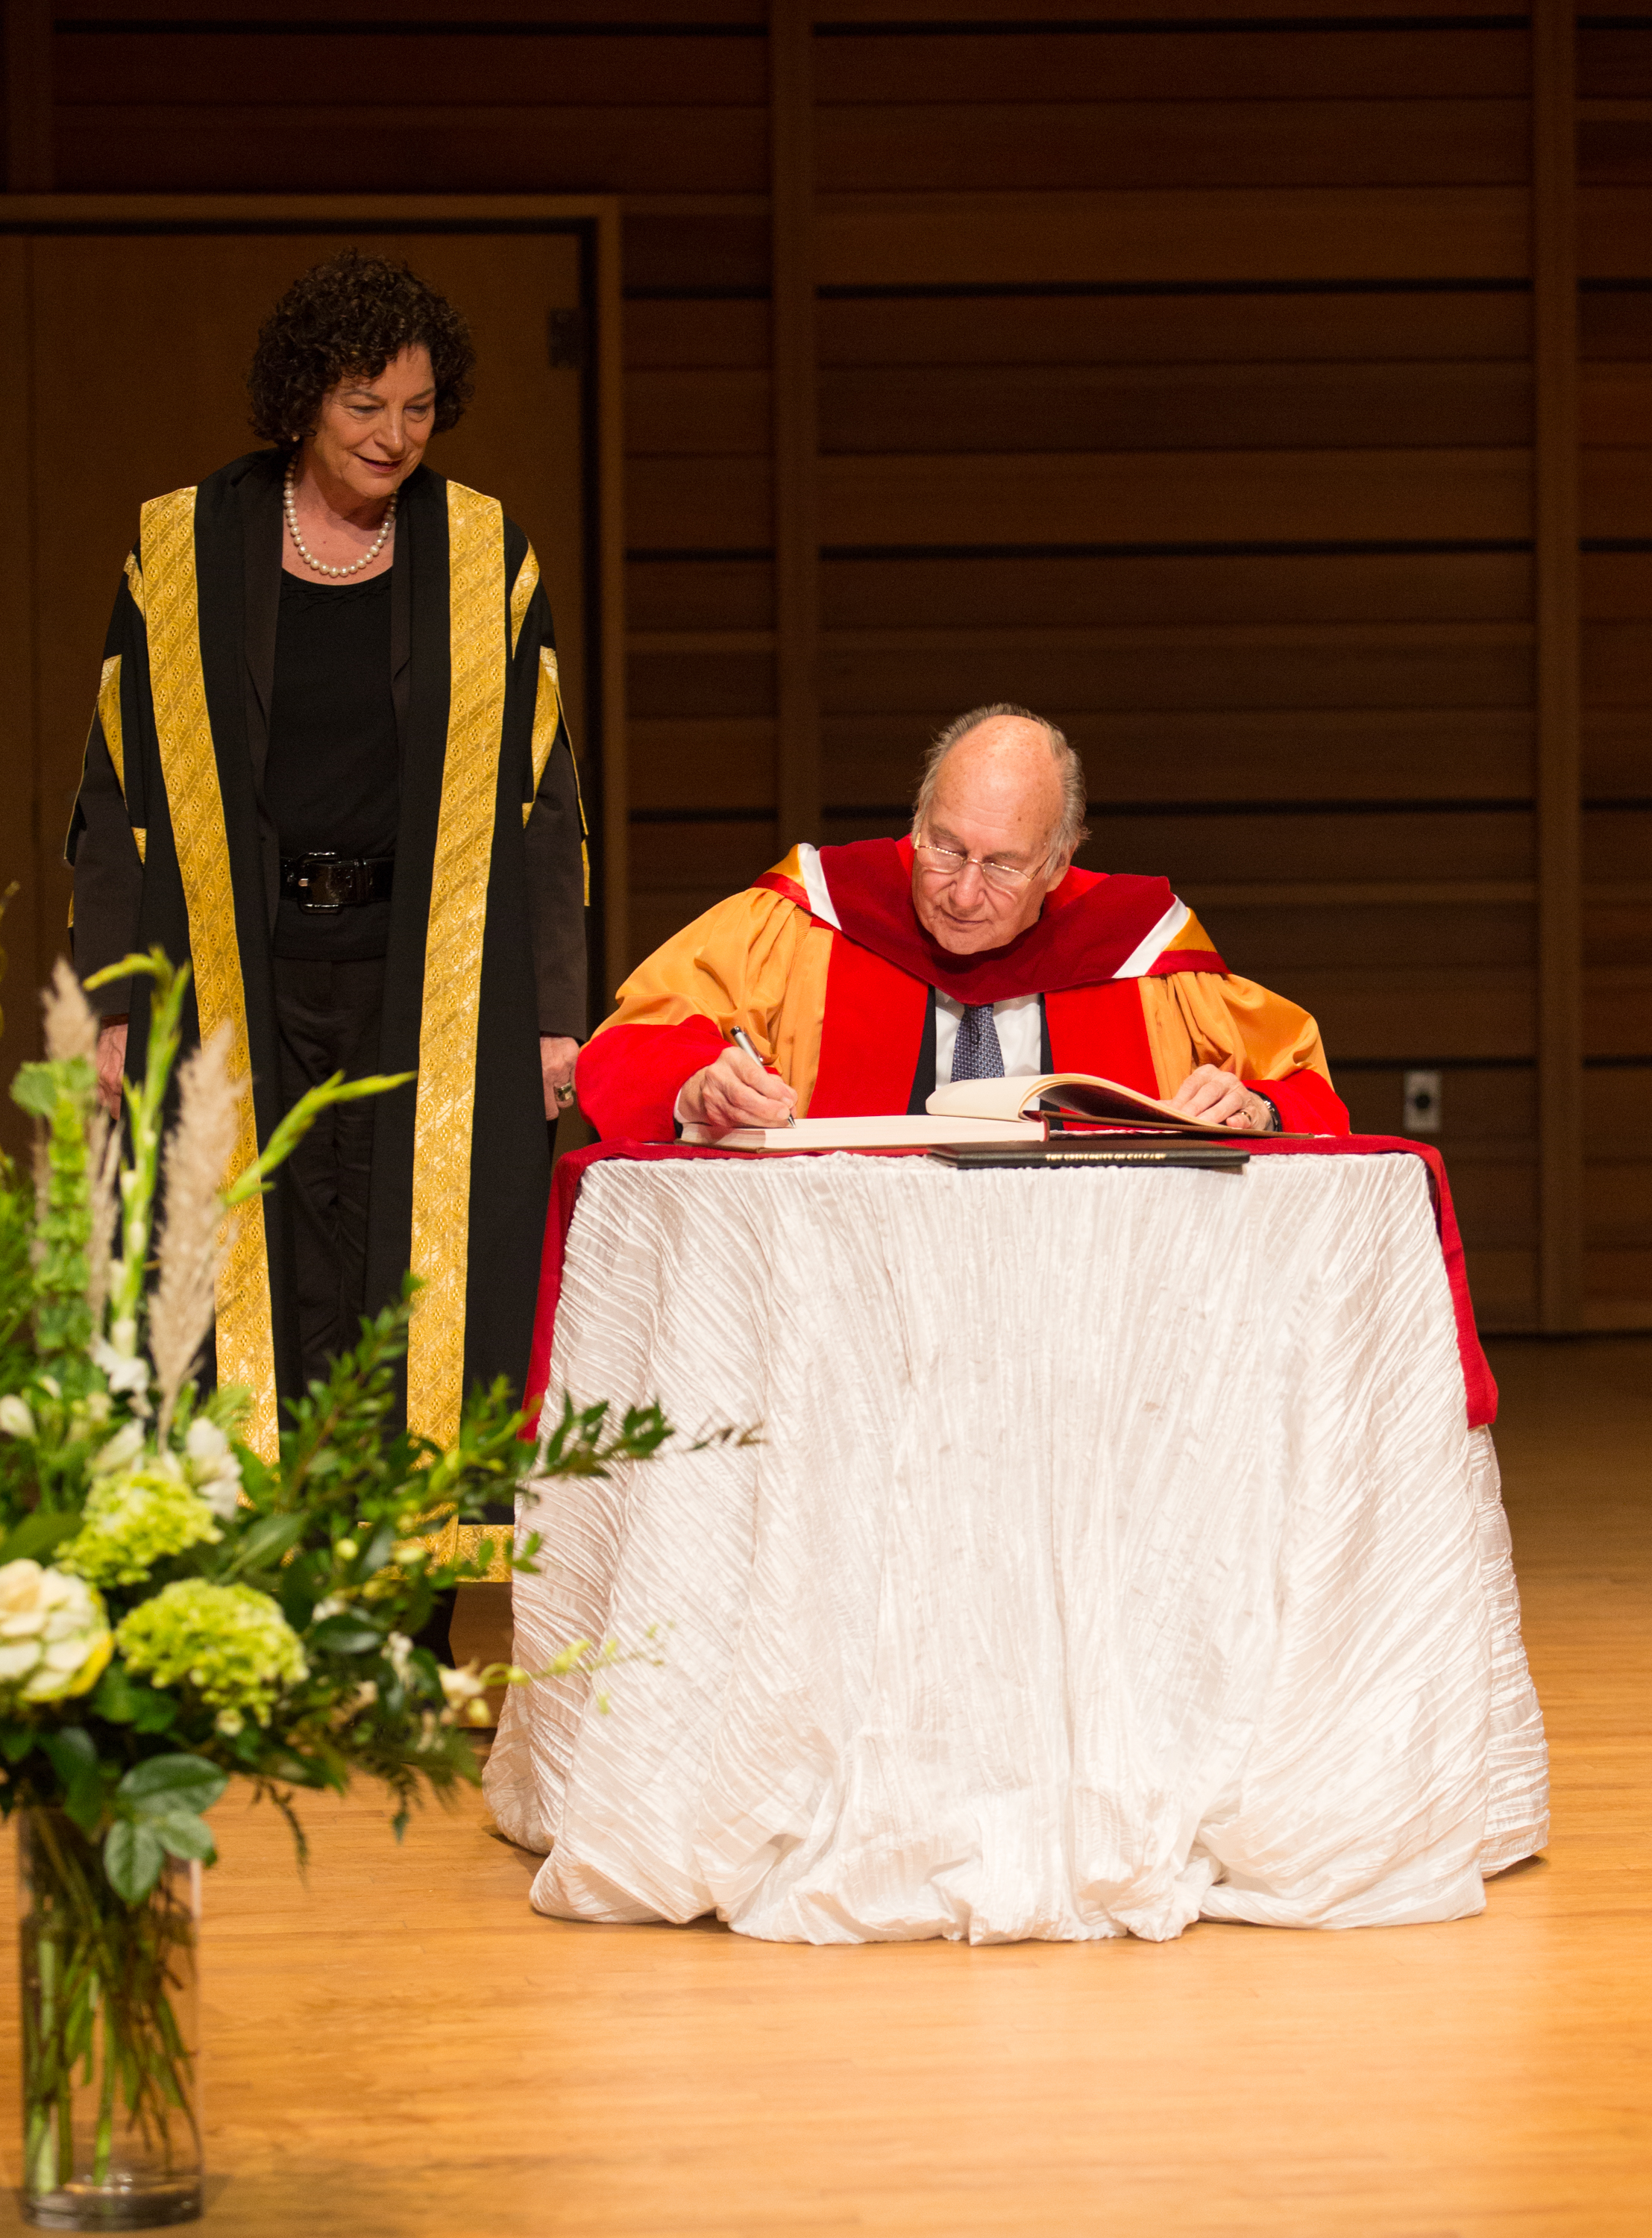 Aga Khan honorary degree